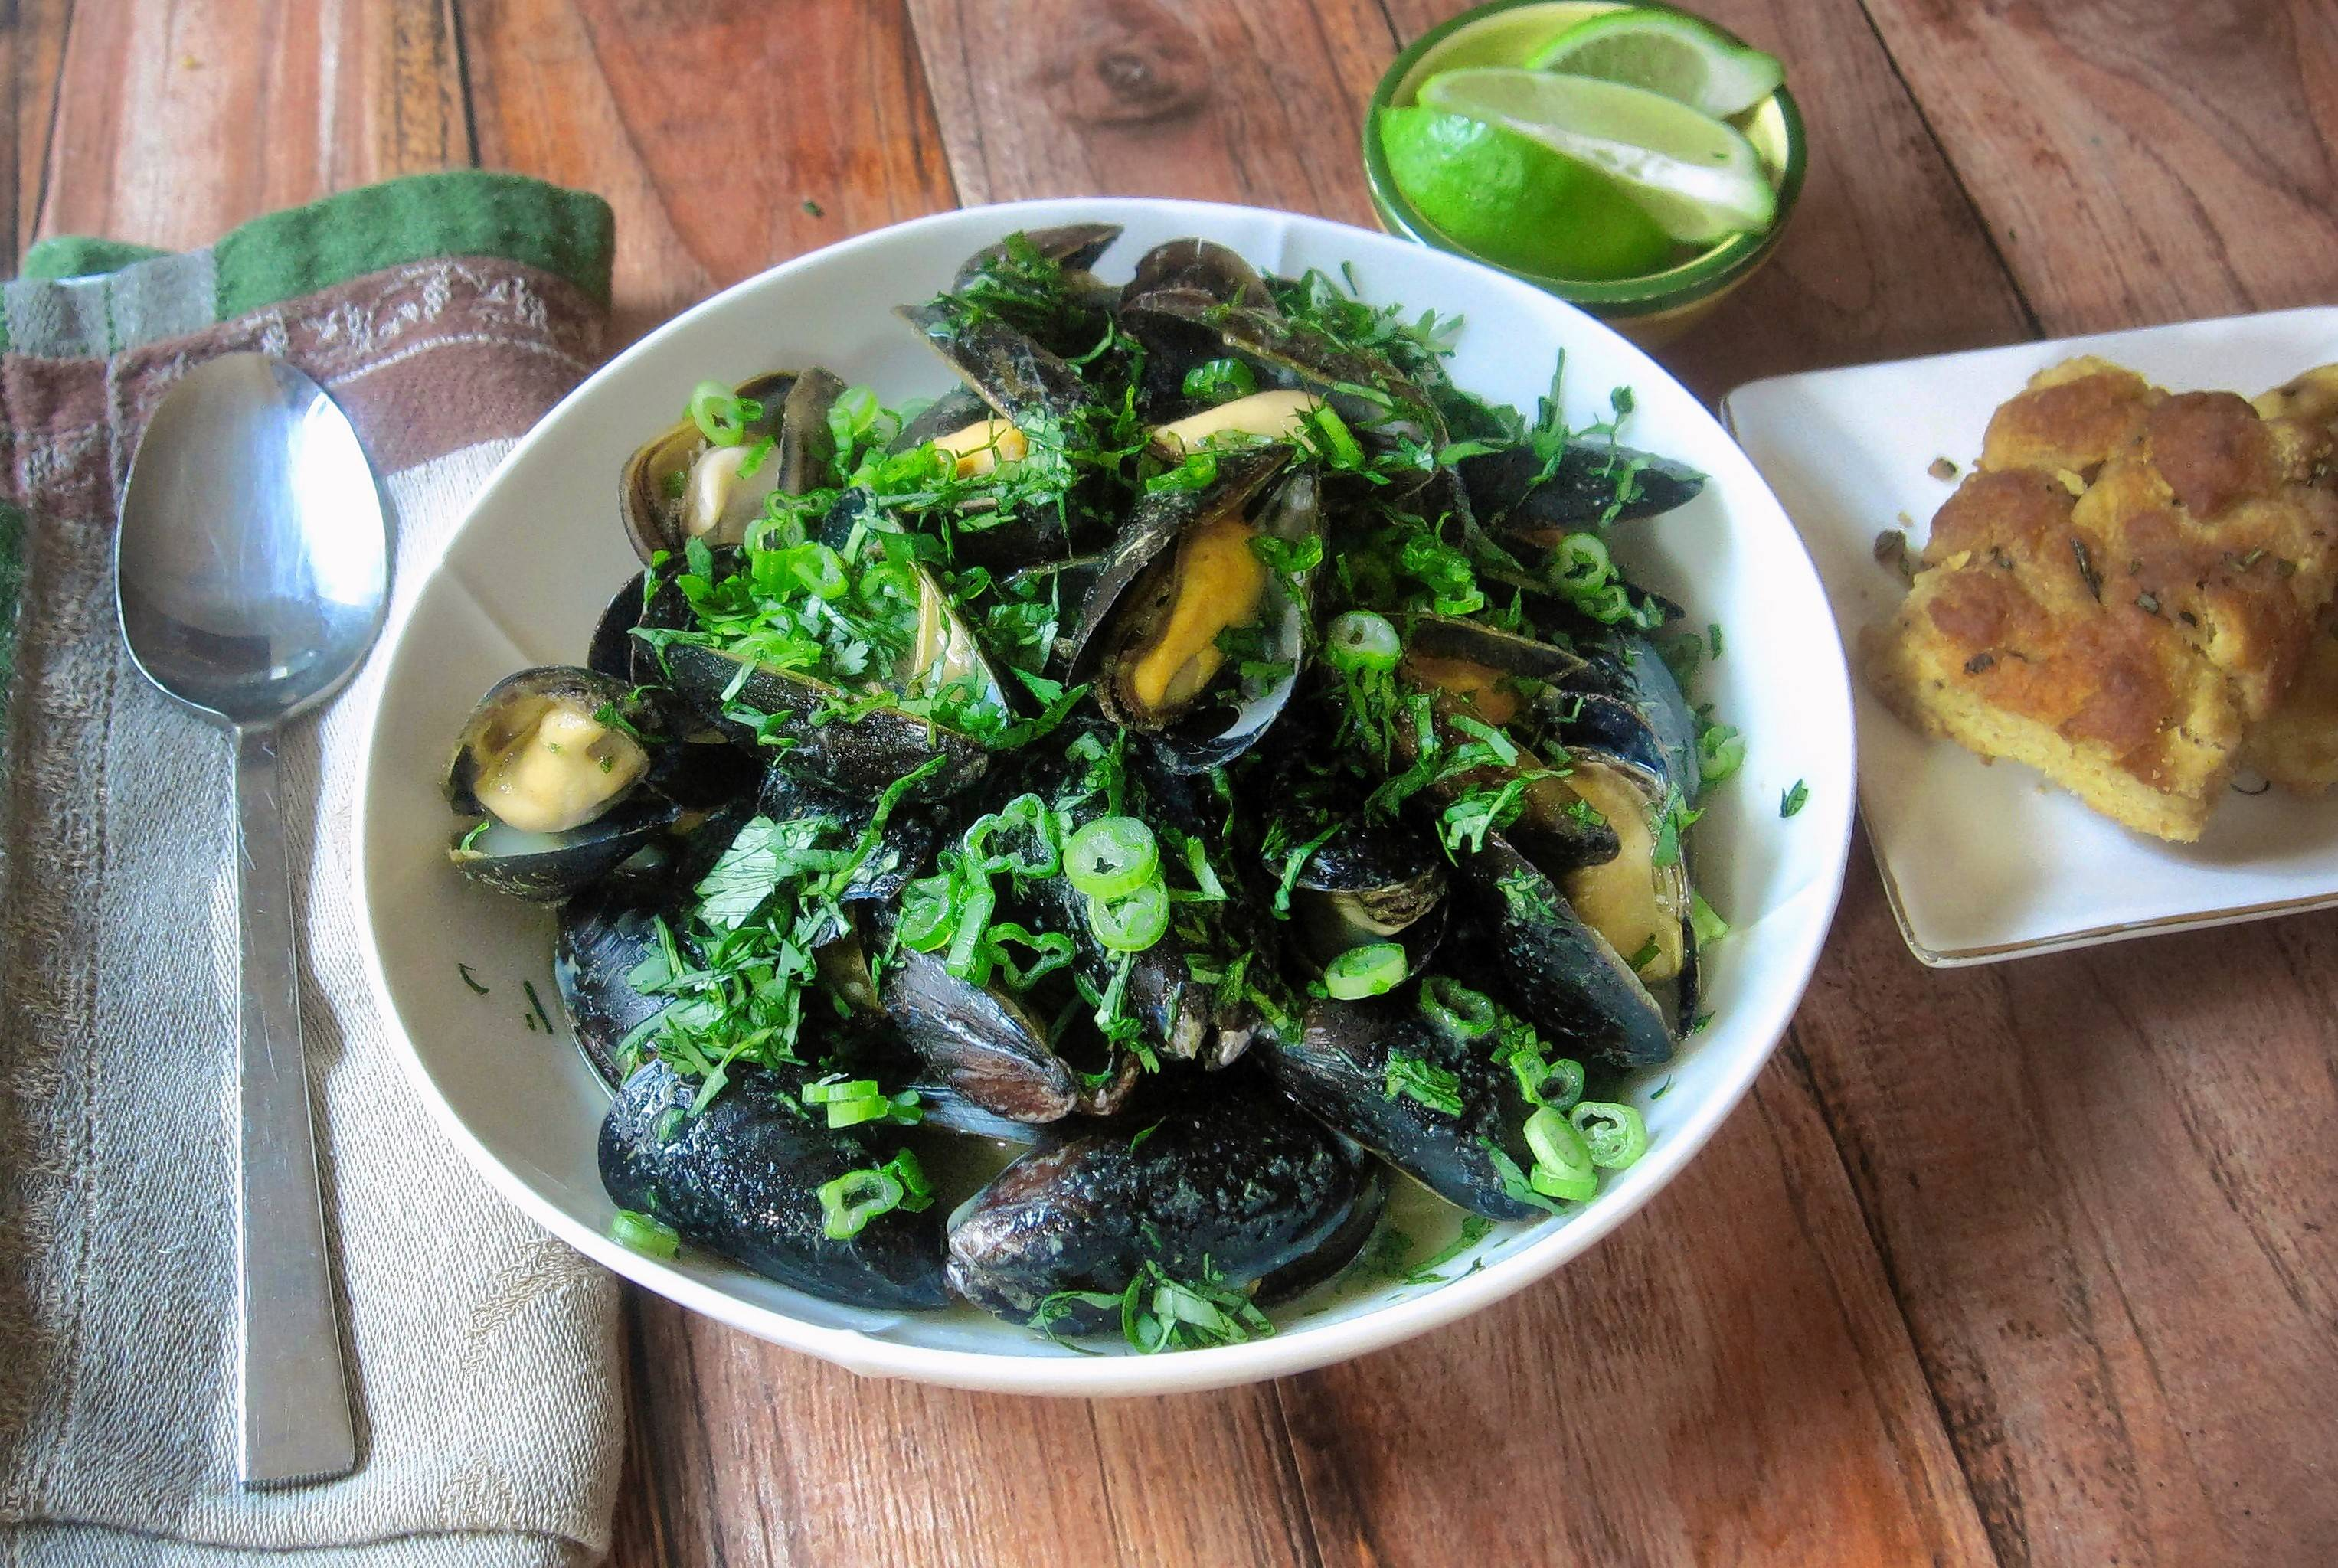 Steamed mussels are a perfect choice for a weeknight meal